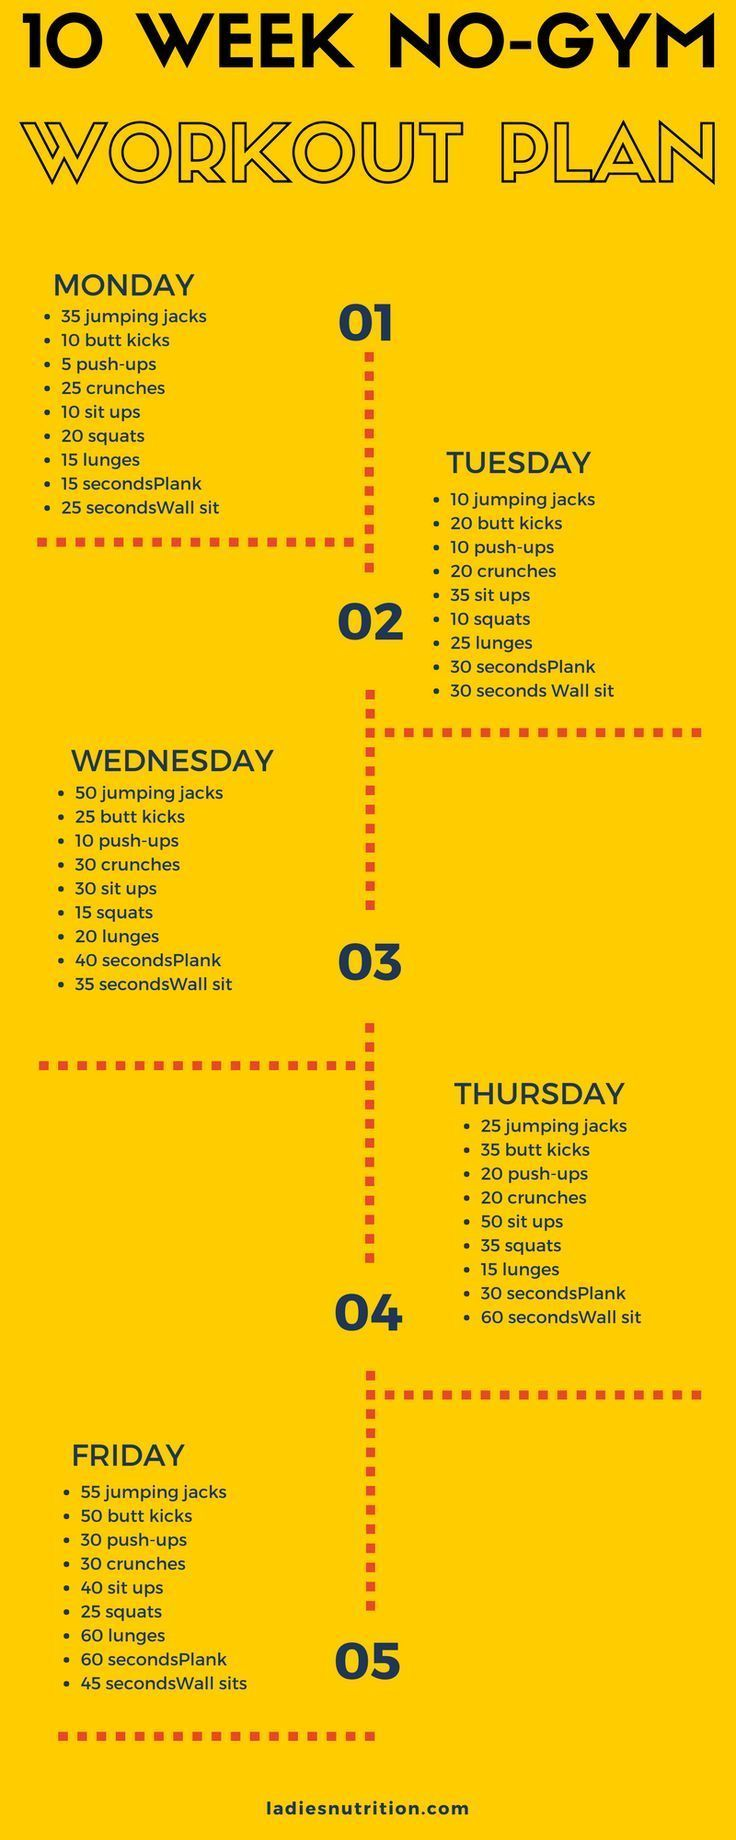 Regular workout is very important and each individual should workout no matter how busy they are. Since the start is the part that is most troublesome, we offer a home workout plan that you can begin with right now! It doesn�t require equipment, it is sim